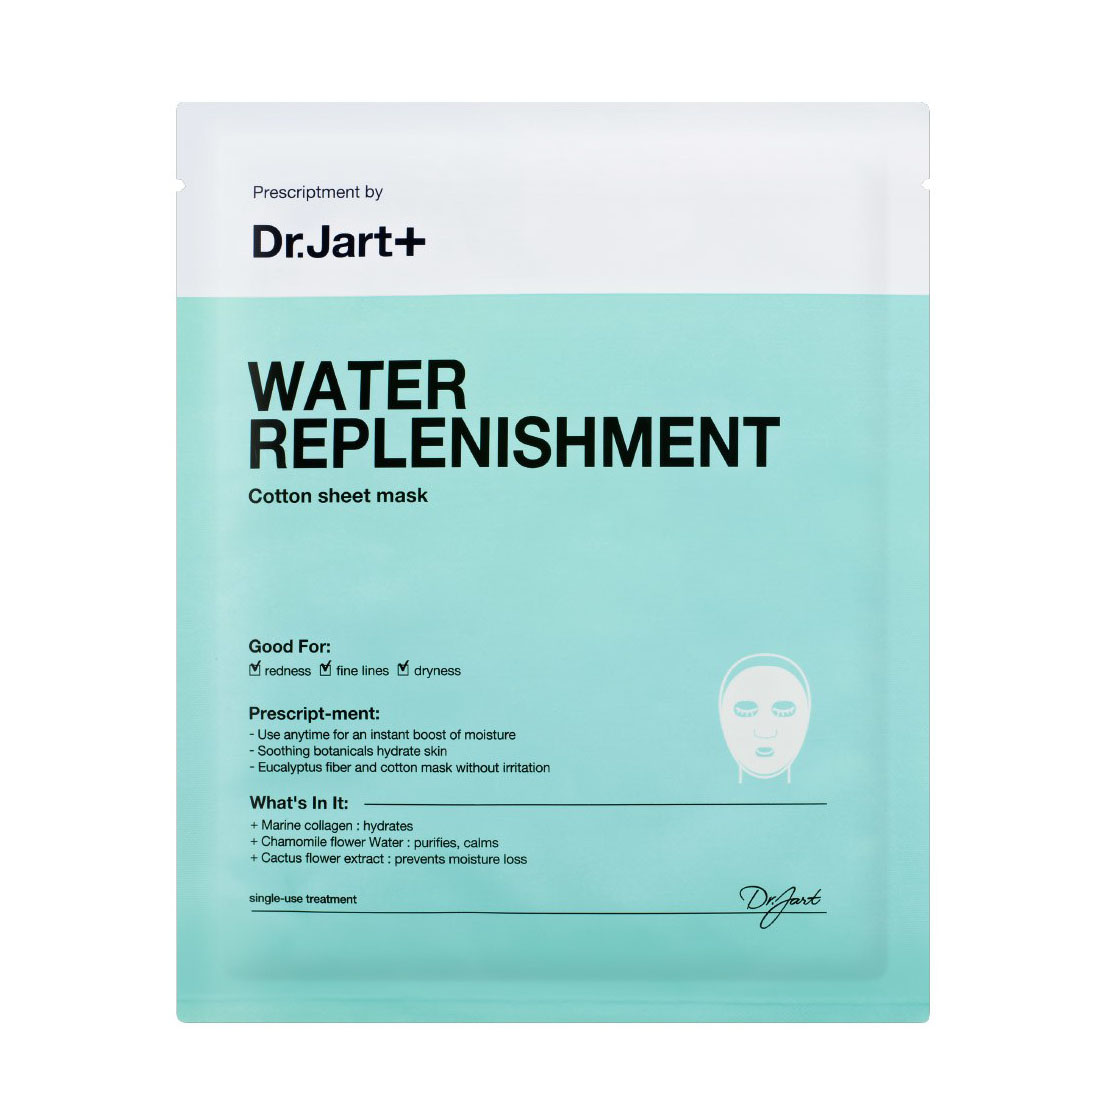 dr-jart-water-replenishment-cotton-sheet-mask